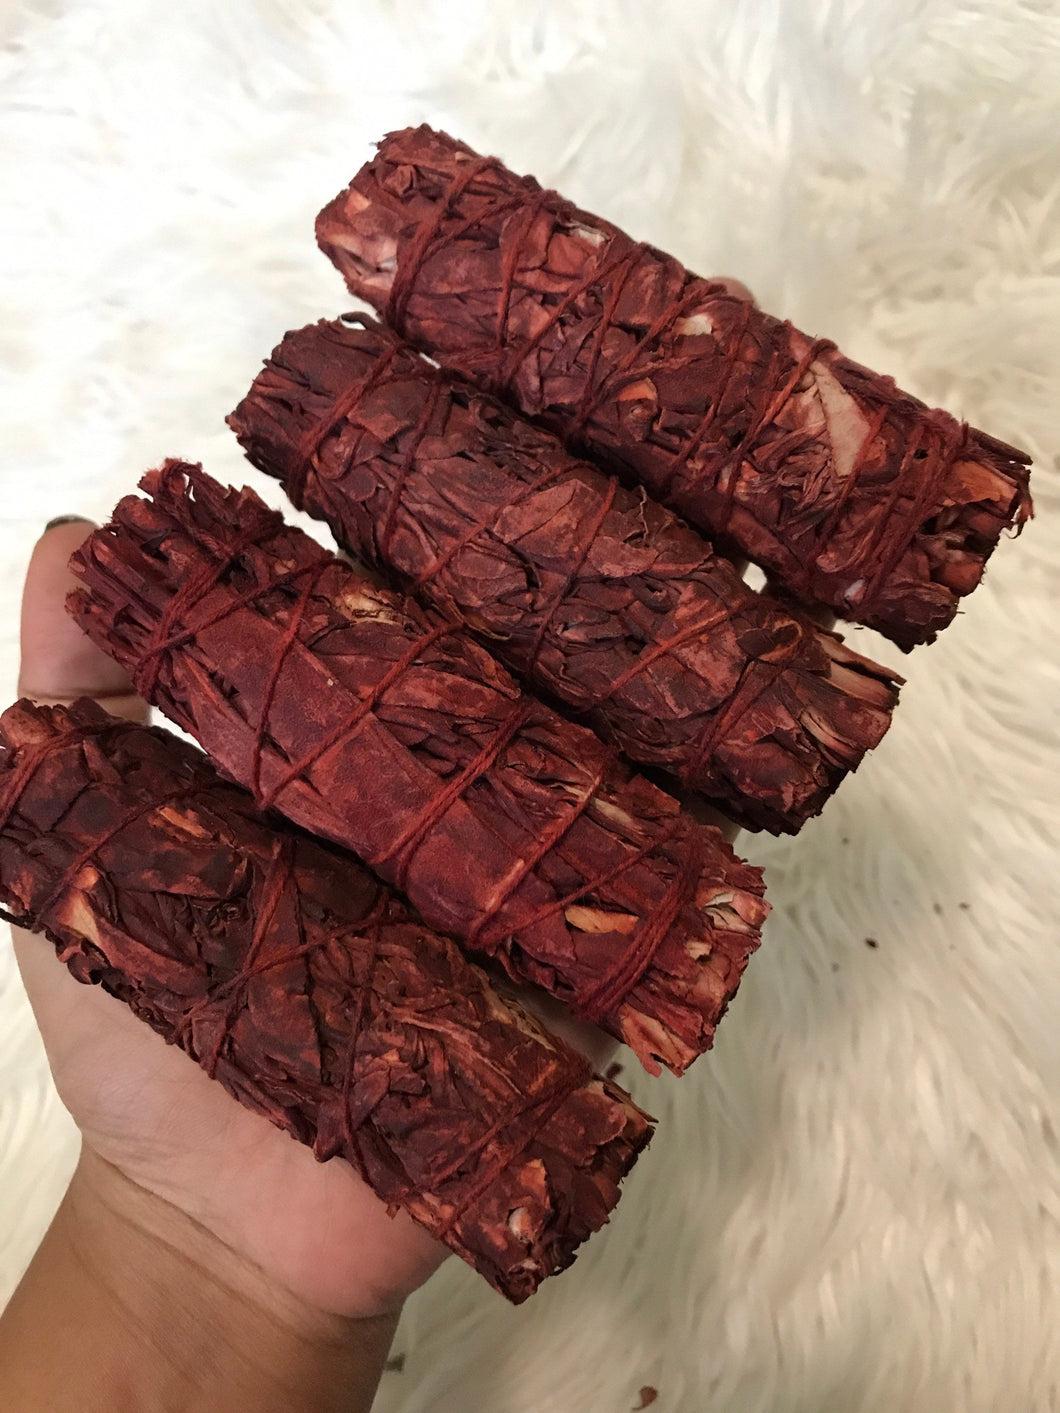 One Dragon's Blood Sage Smudge Stick